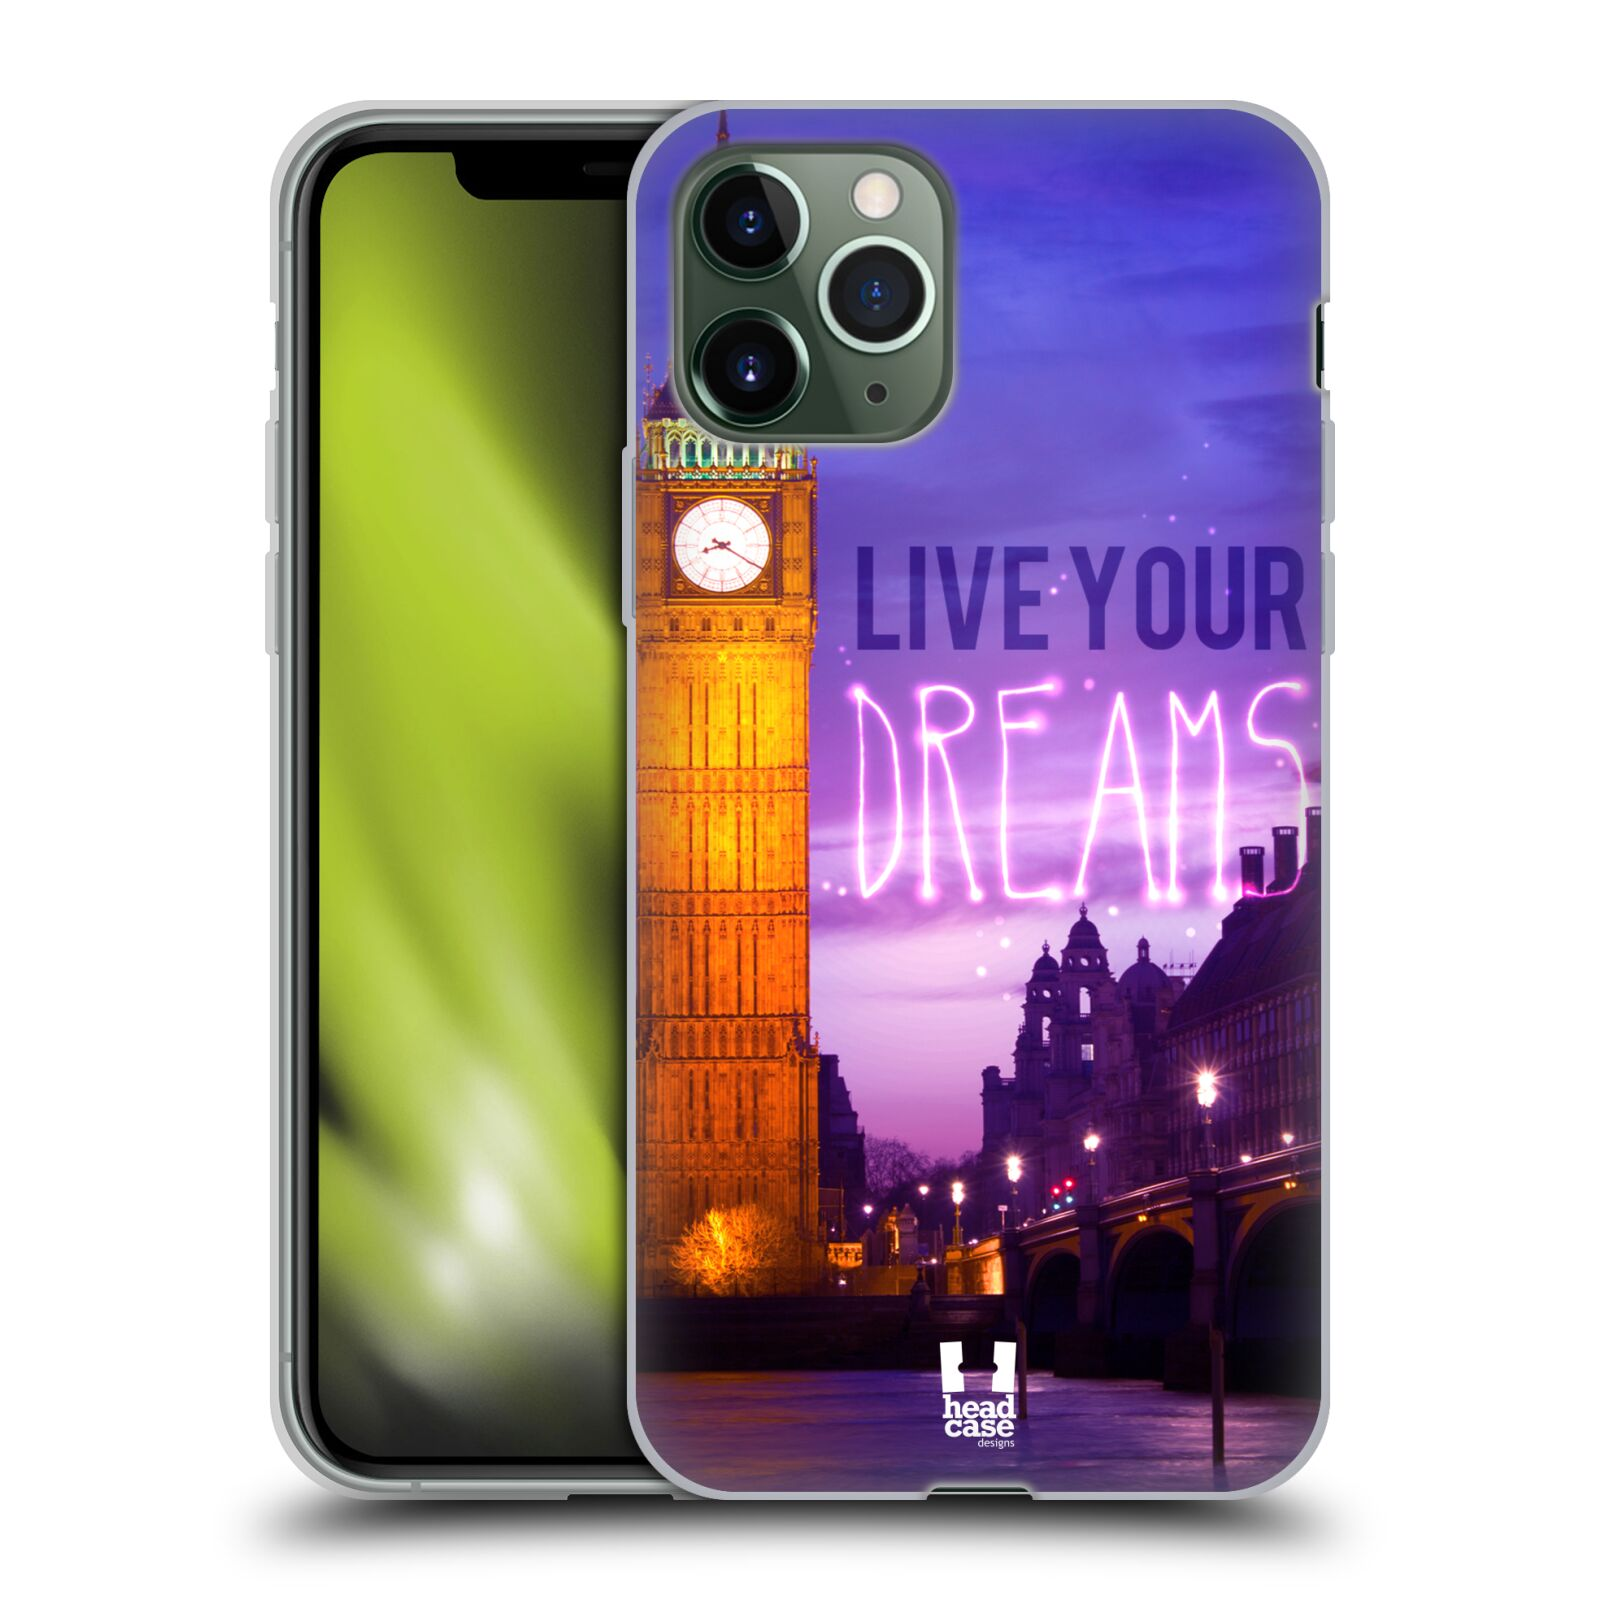 iphone obal x | Silikonové pouzdro na mobil Apple iPhone 11 Pro - Head Case - DREAMS